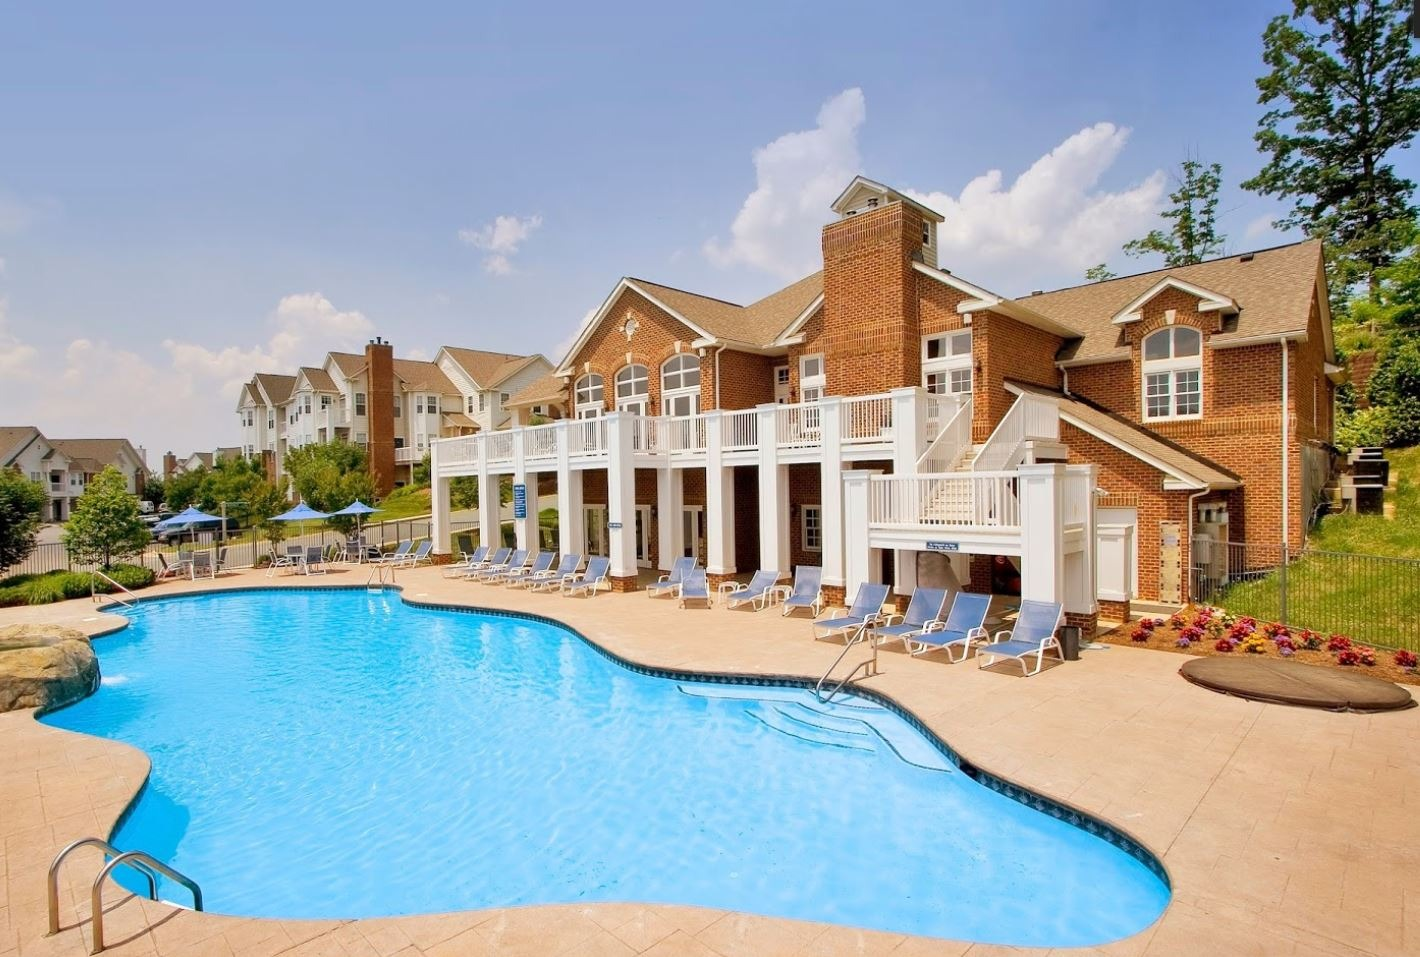 """CBG builds Carriage Hill Phase II, a 140-Unit Class A """"Big House"""" Apartment Community in Charlottesville, VA"""